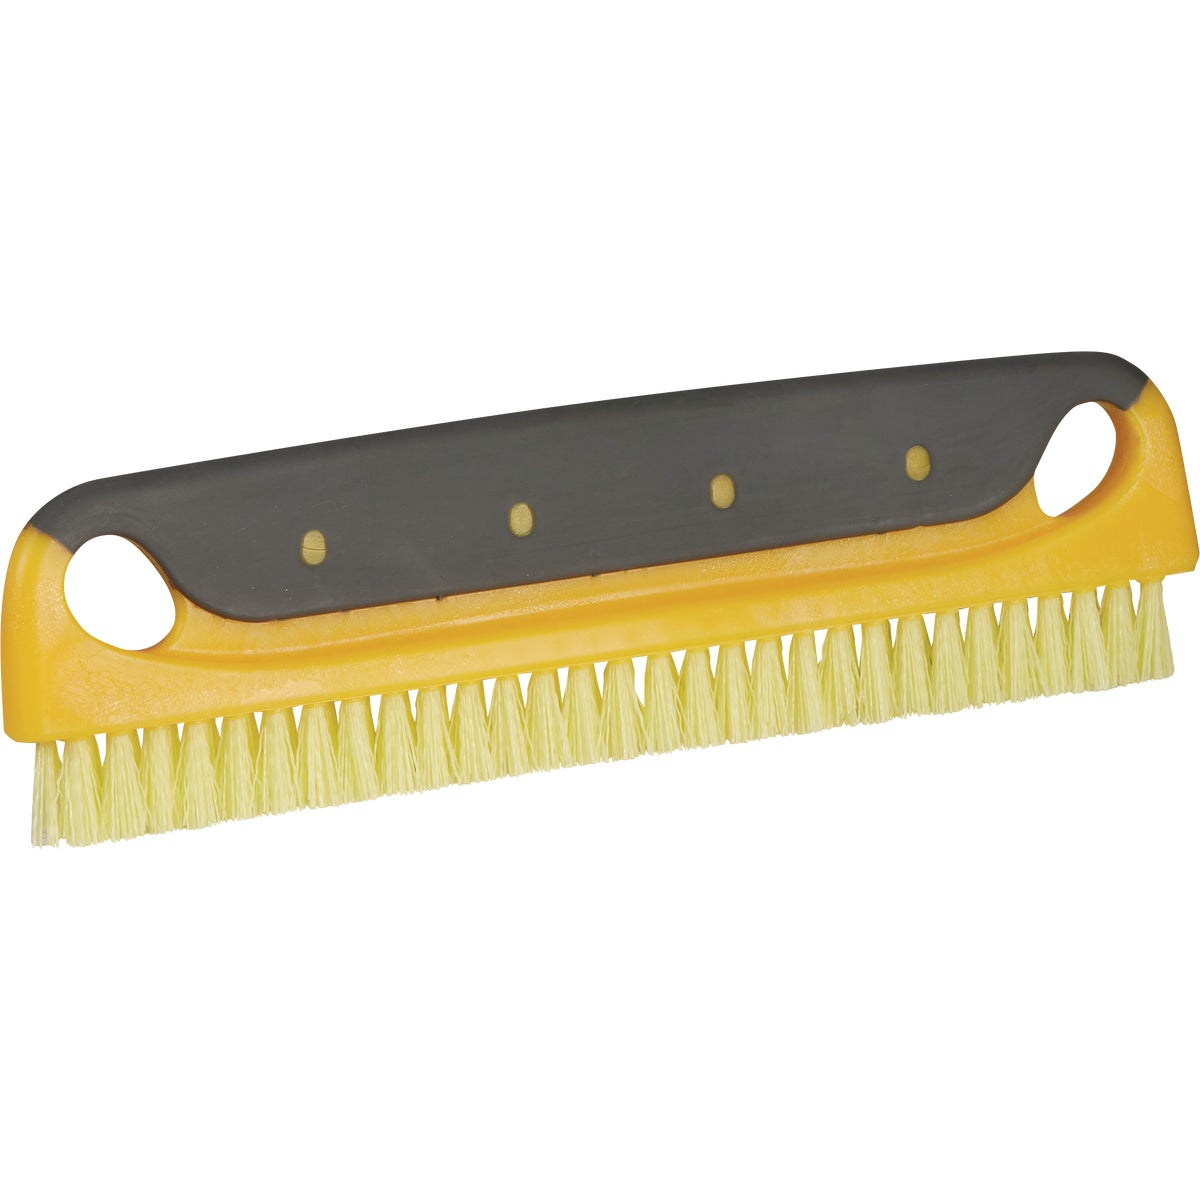 VINYL SMOOTH BRUSH - 3375 by Warner Mfg Co